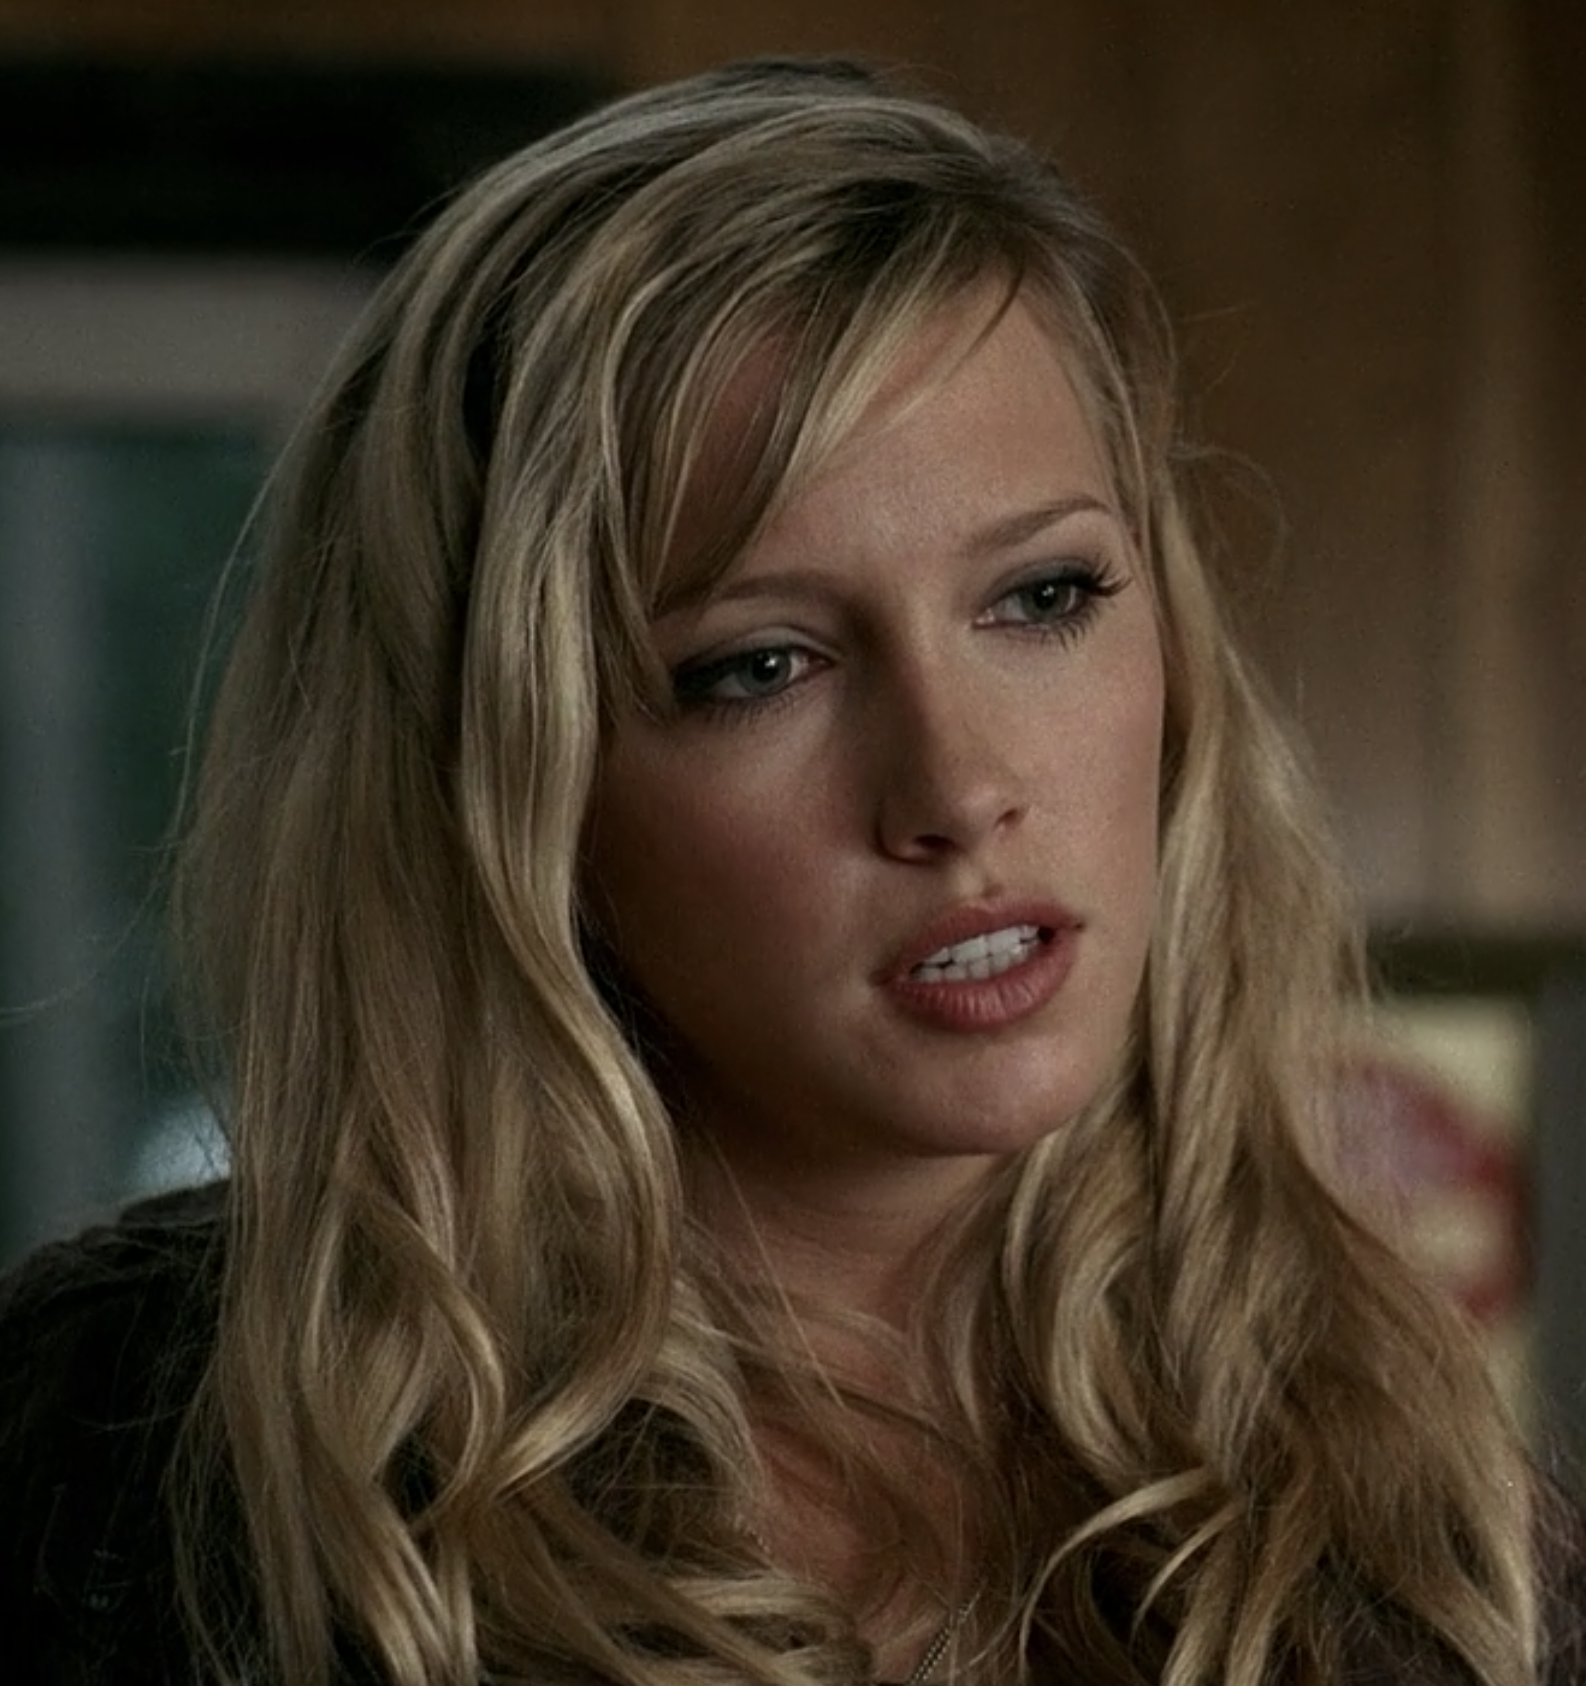 Before  Gossip Girl  and  Arrow , Katie Cassidy played Ruby, a demon who wanted to help free Lucifer. -  The character was later played by Genevieve Padalecki, Jared Padalecki's wife IRL.